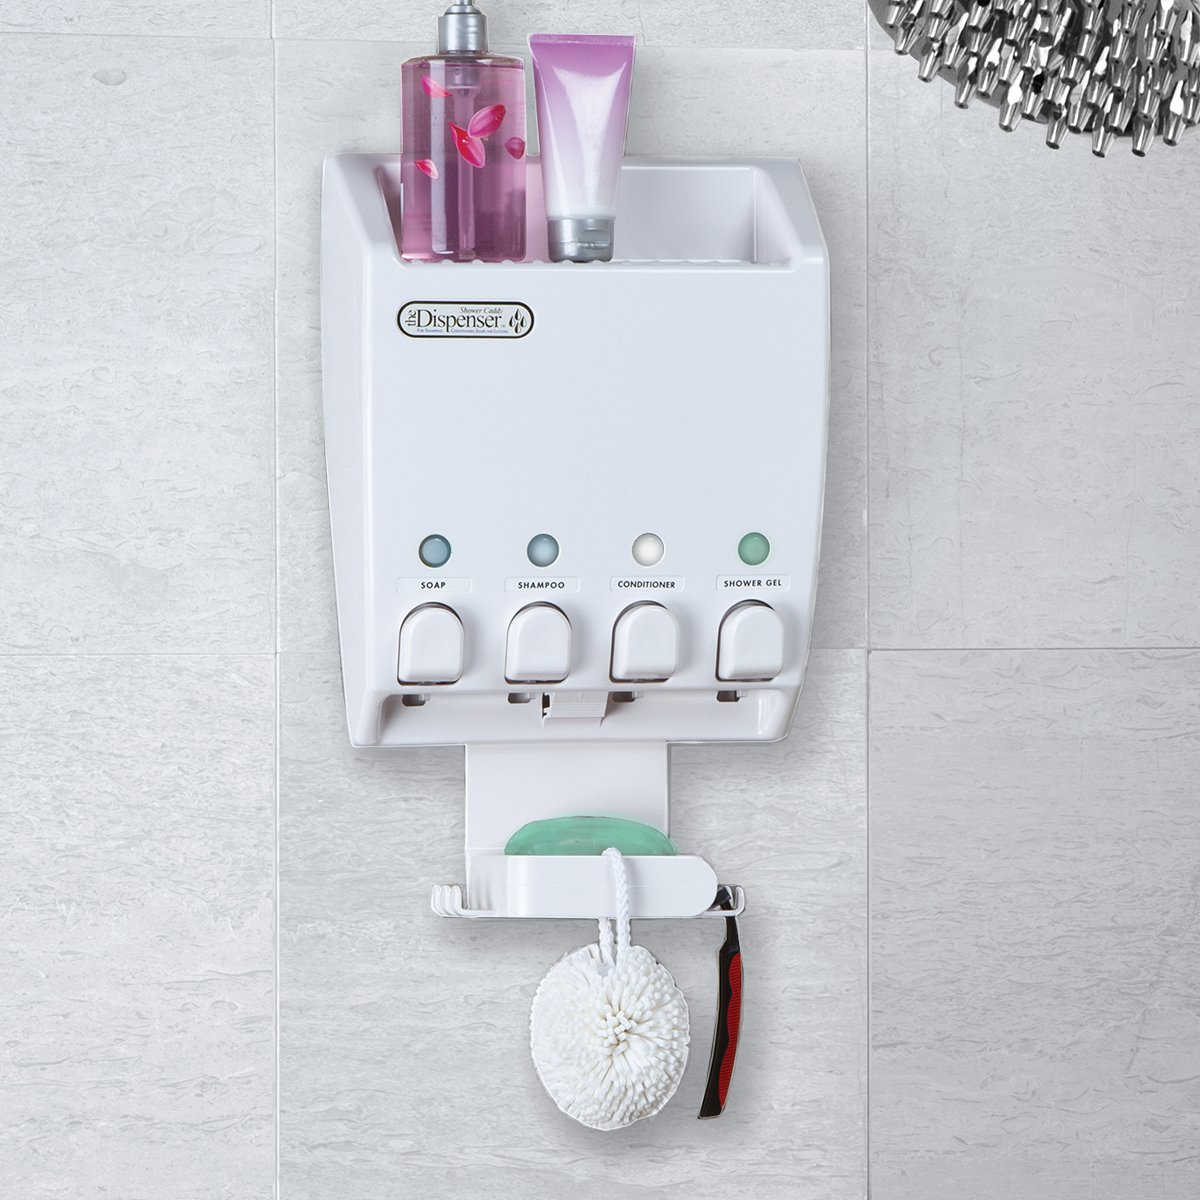 Amazon.com: Better Living Products Dispenser Shower Caddy, Four ...